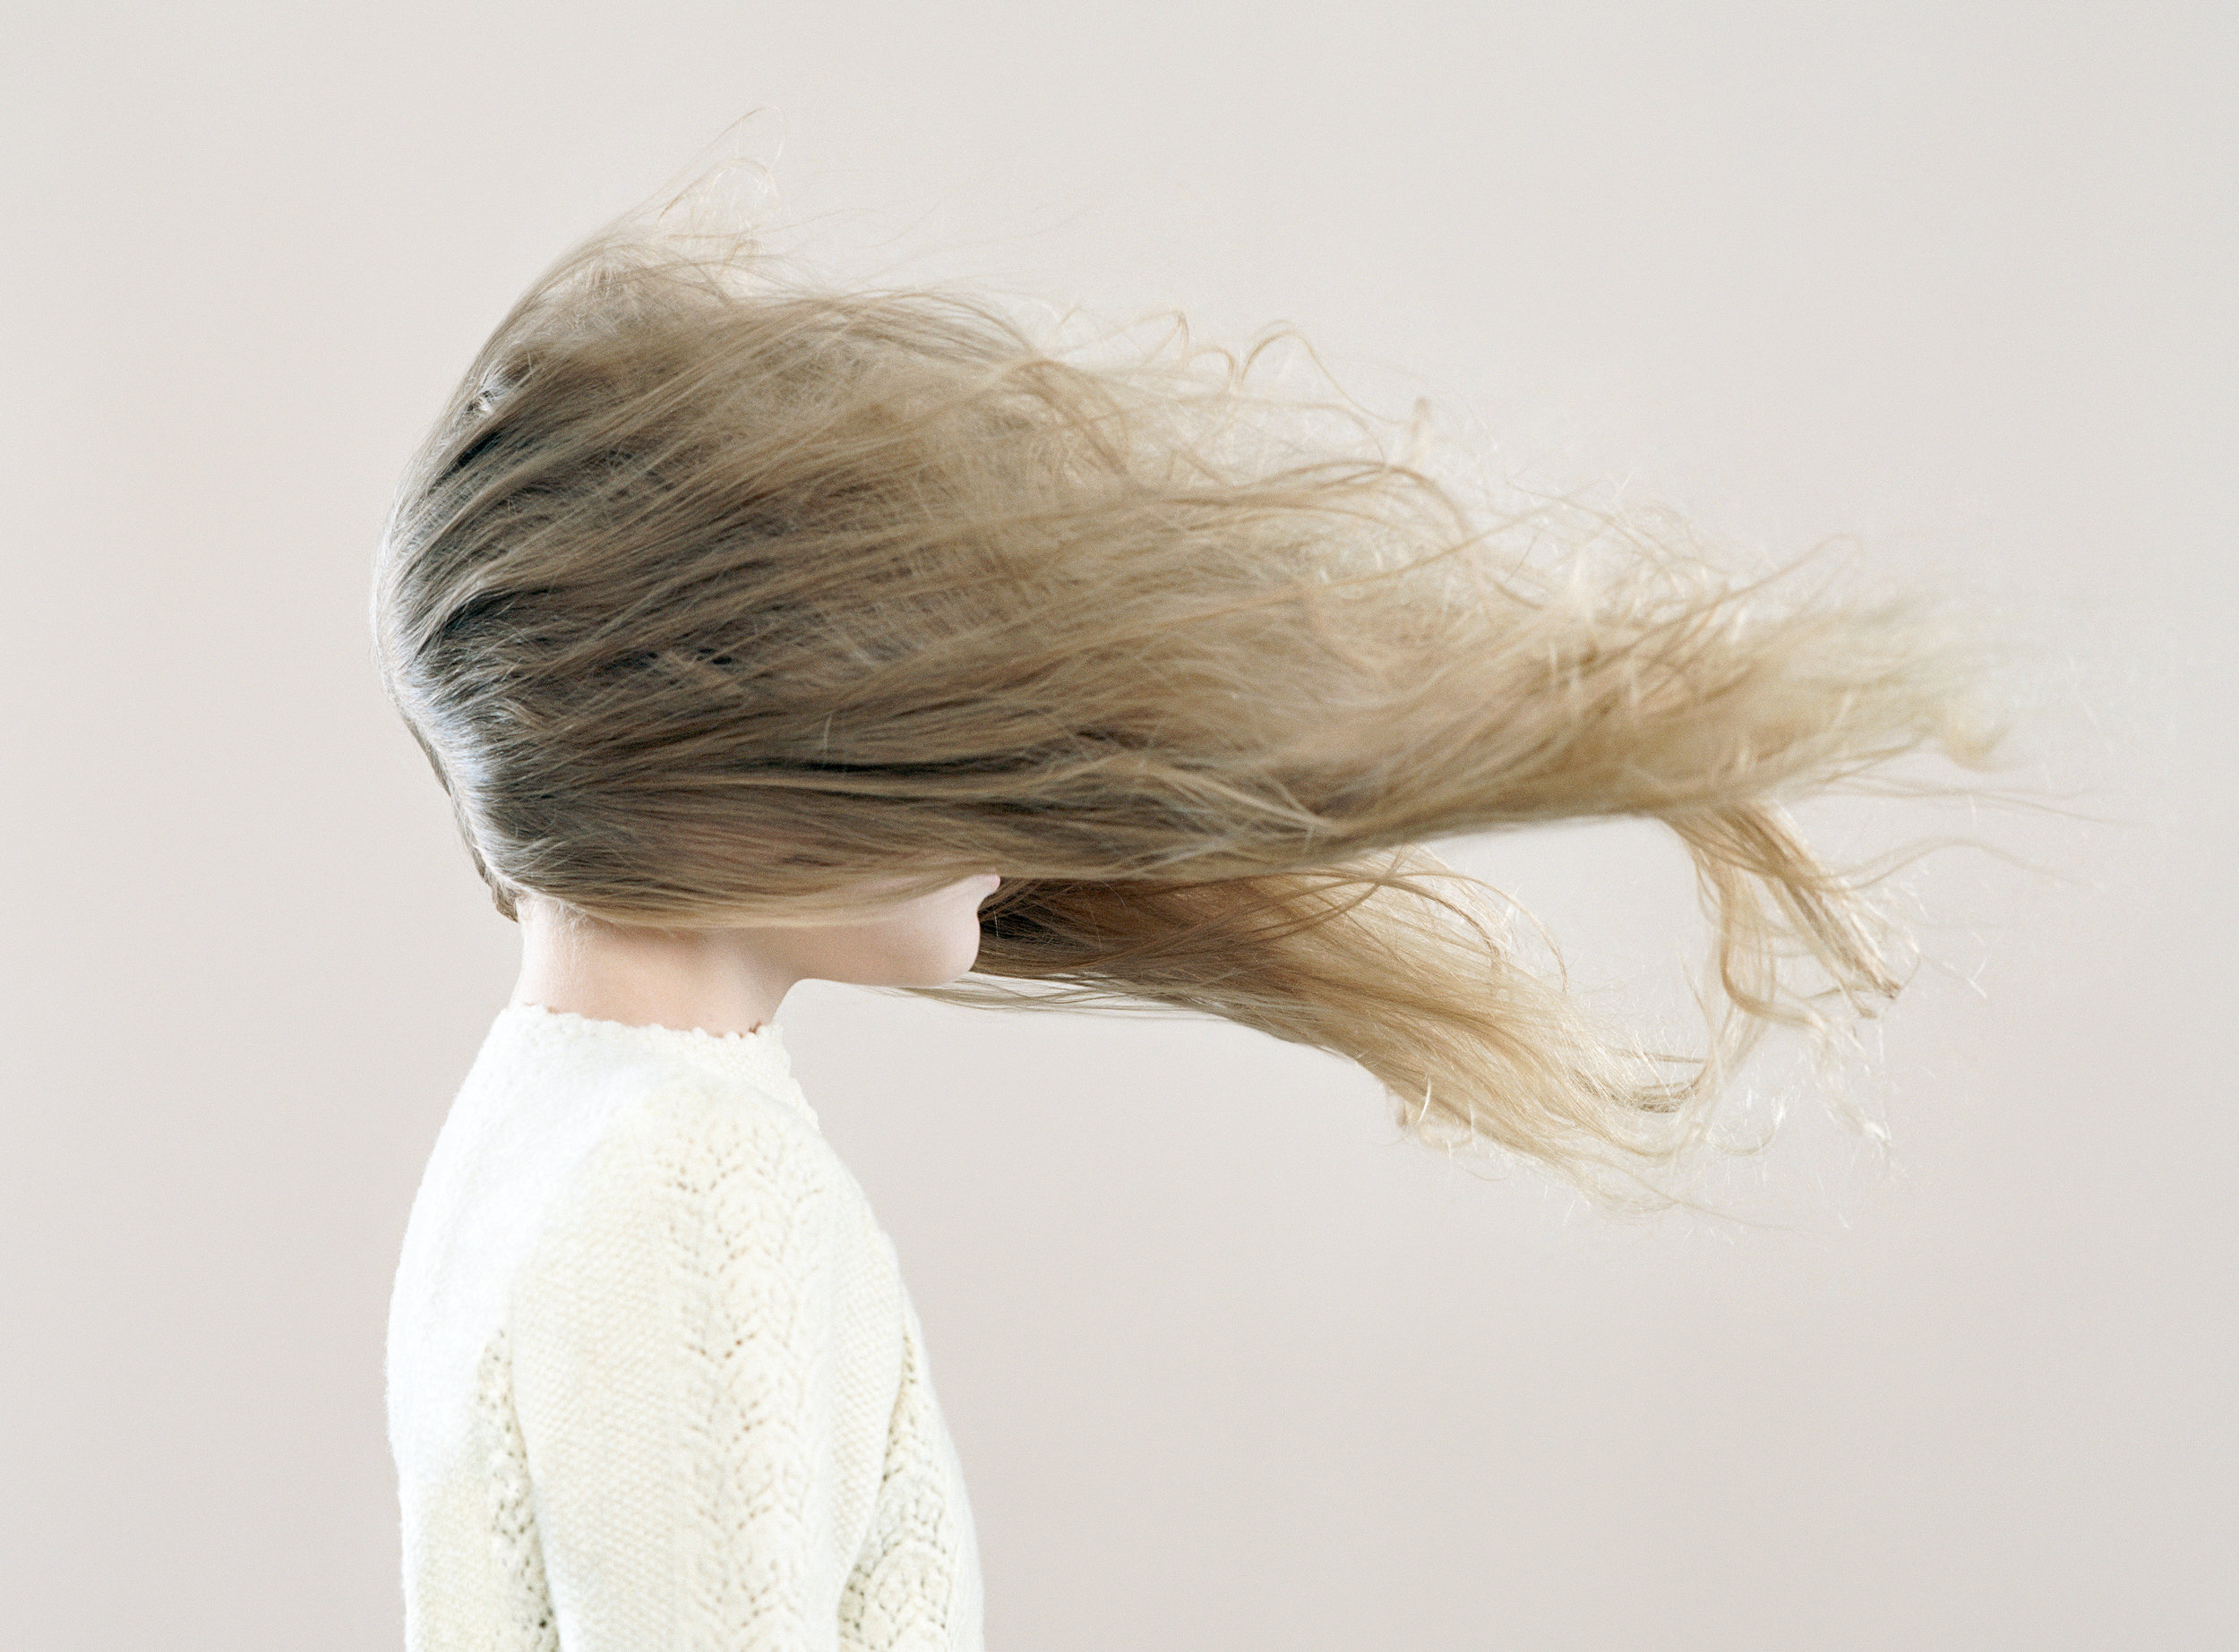 Zara II, 2005  by Petrina Hicks - from the  Untitled  series.